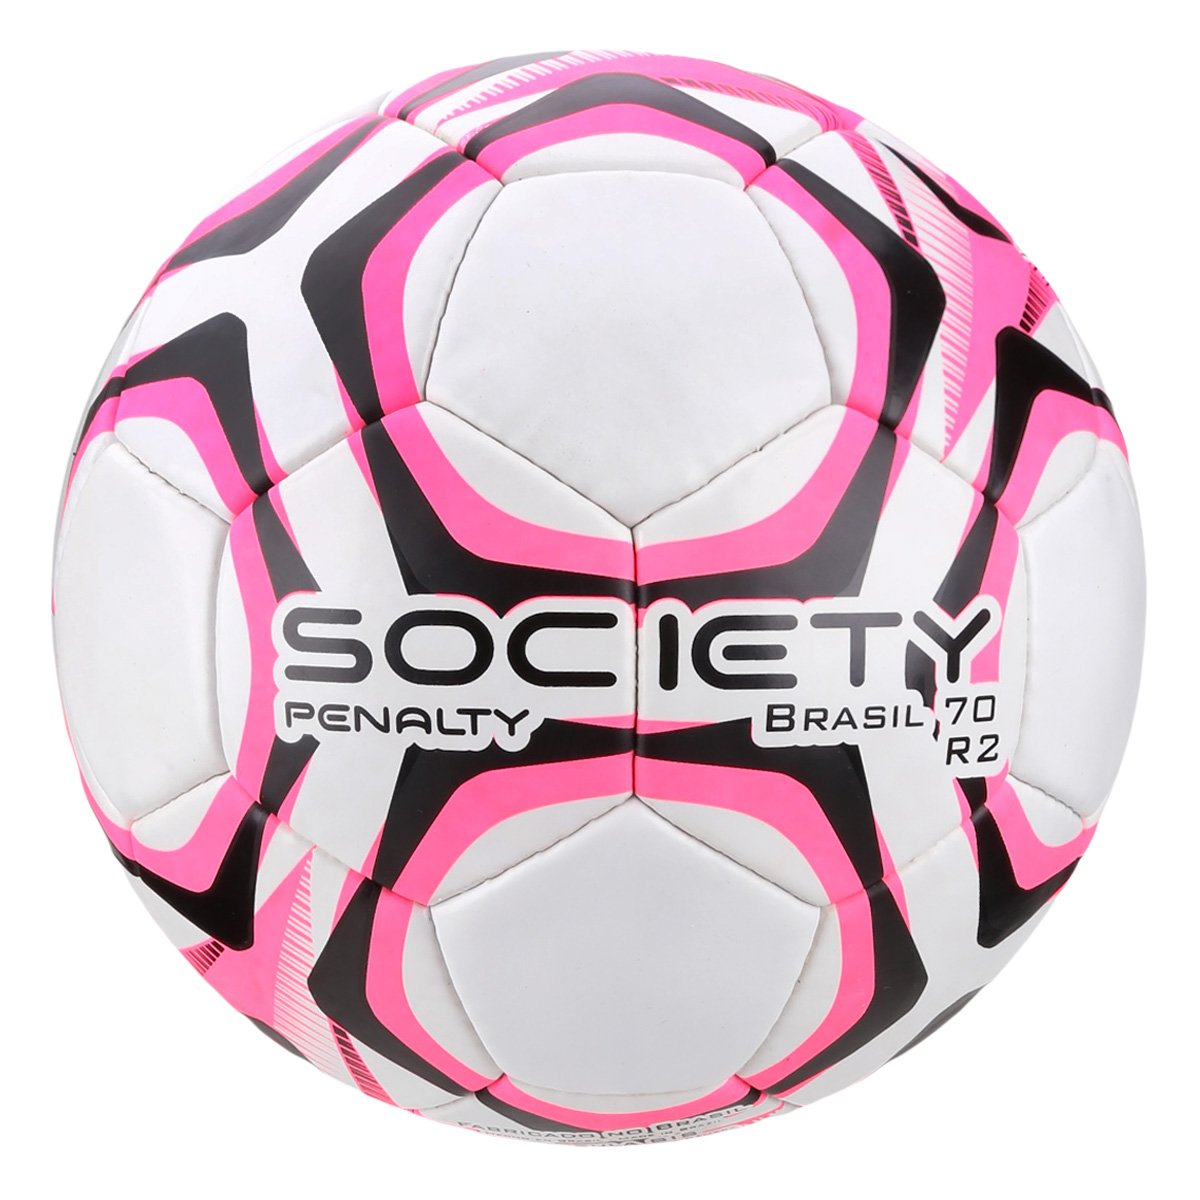 Shopping Smiles - Bola de Futebol Society Penalty Brasil 70 R2 LX 84cd9669dca95